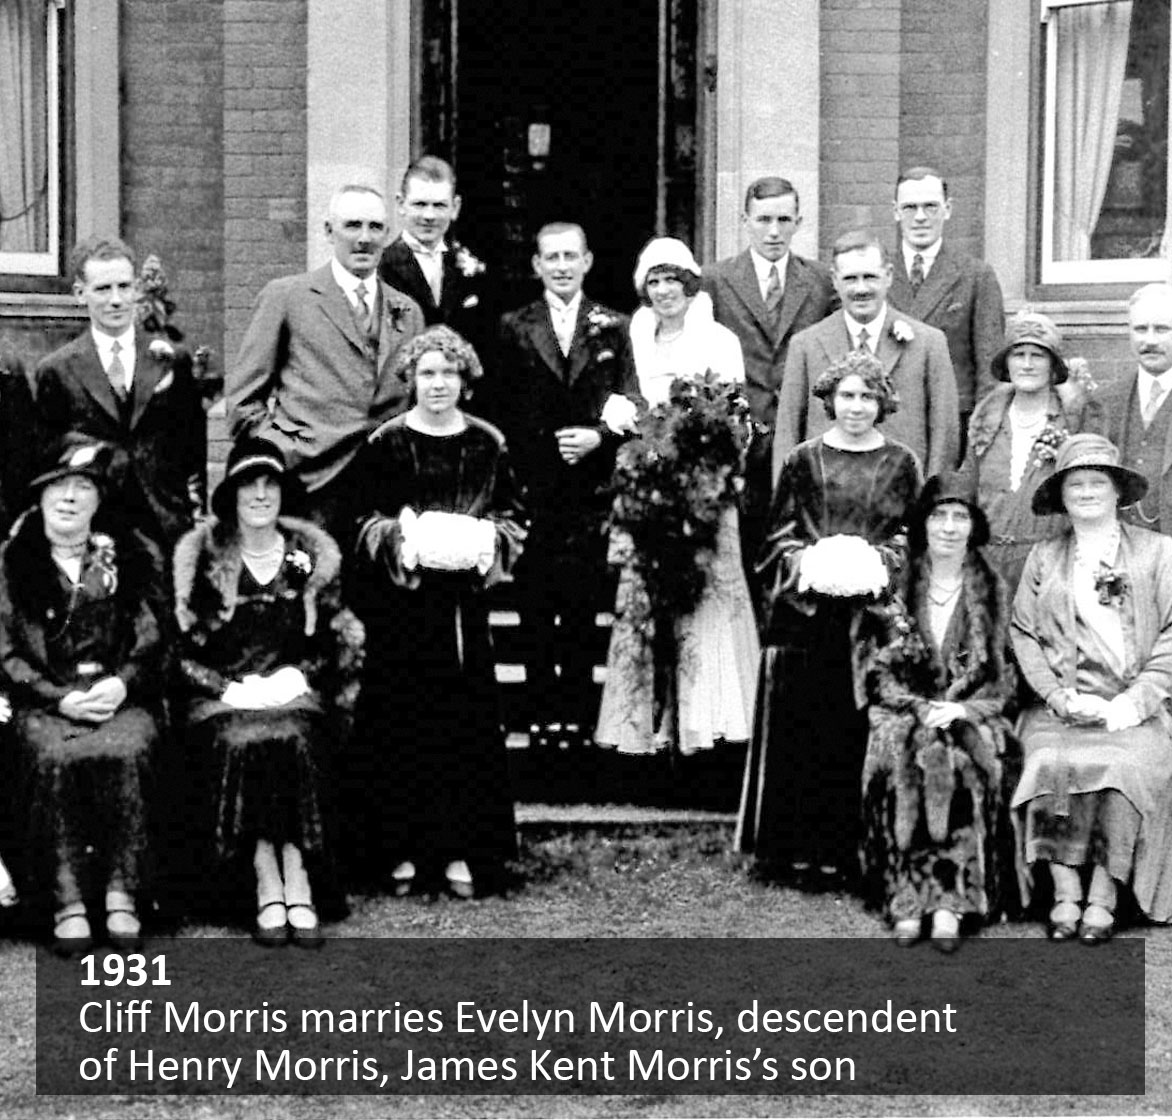 Cliff Morris marries Evelyn Morris, descendant of Henry Morris, James Kent Morris's son